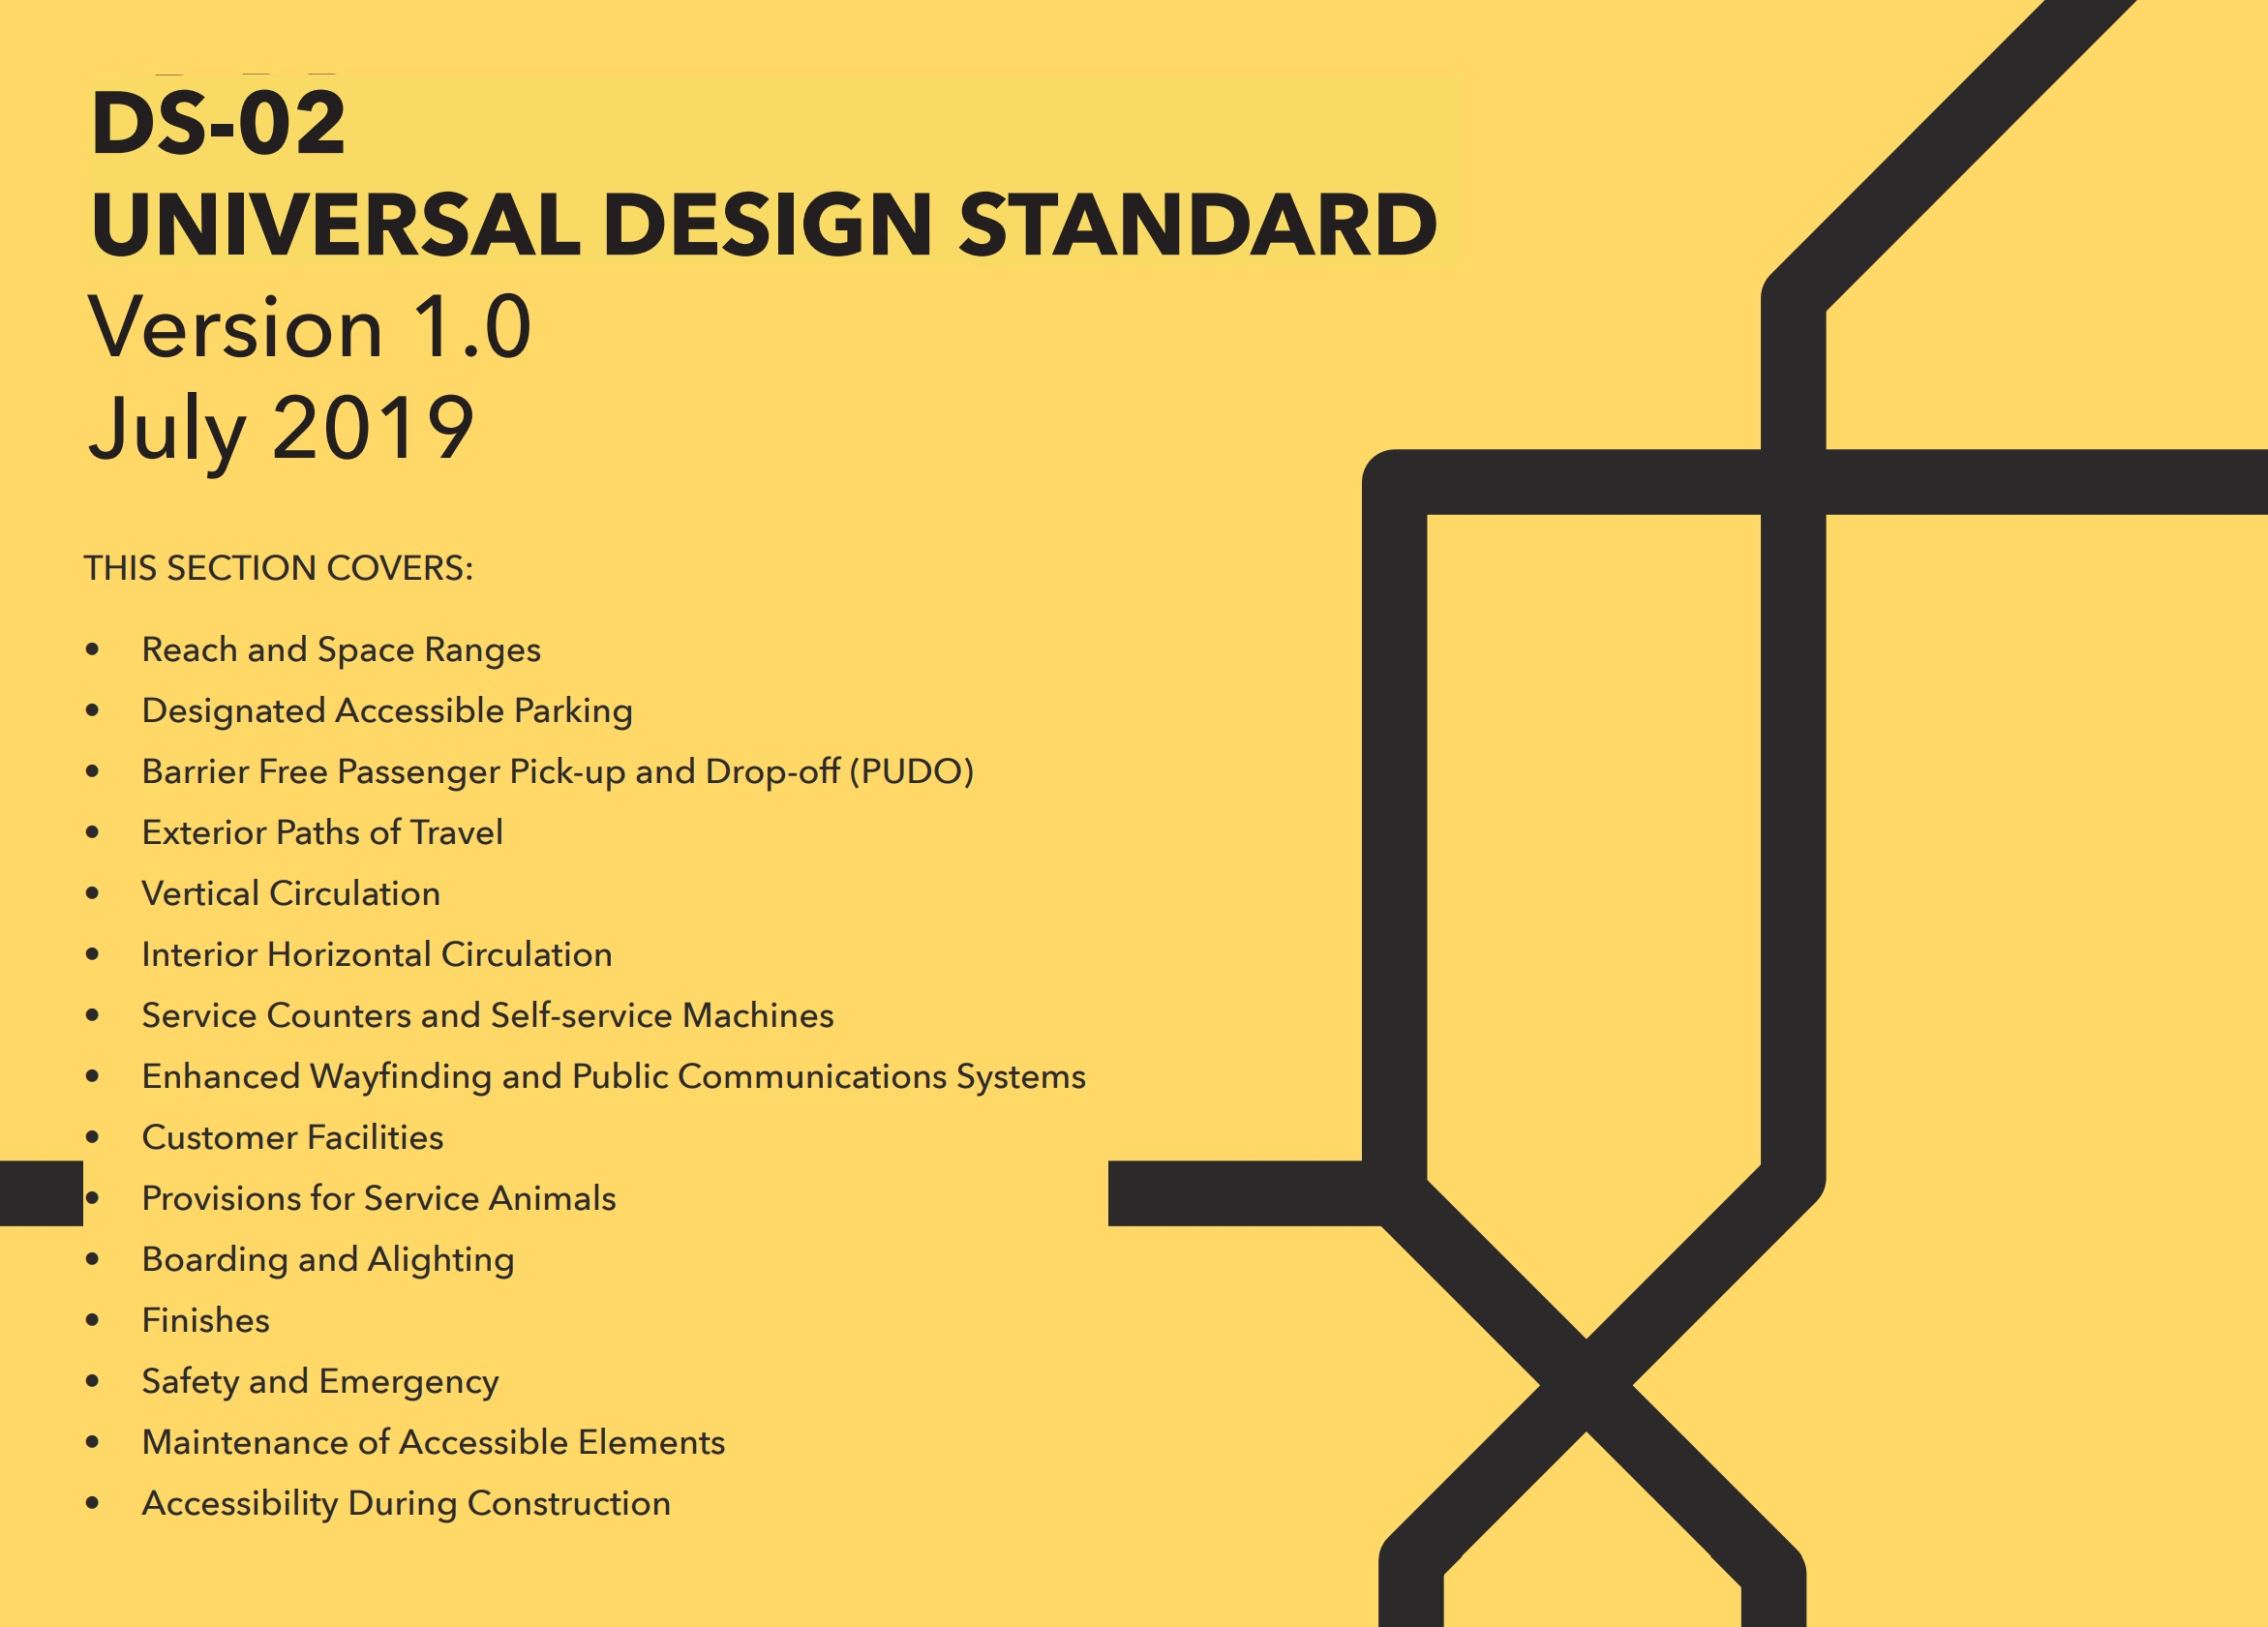 The Universal Design Standard cover page with the text 'DS-02 Universal Design Standard Verson 1.0 July 2019. This section covers reach and space ranges, designated accessible parking, barrier free passenger pick-up and drop-off, exterior paths of travel, vertical circulation, interior horizontal circulation, service counters and self-service machines, enhanced wayfinding and public communications systems, customer facilities, provisions for service animals, boarding and alighting, finishes, safety and emergency, maintenance of accessible elements, accessibility during construction.'